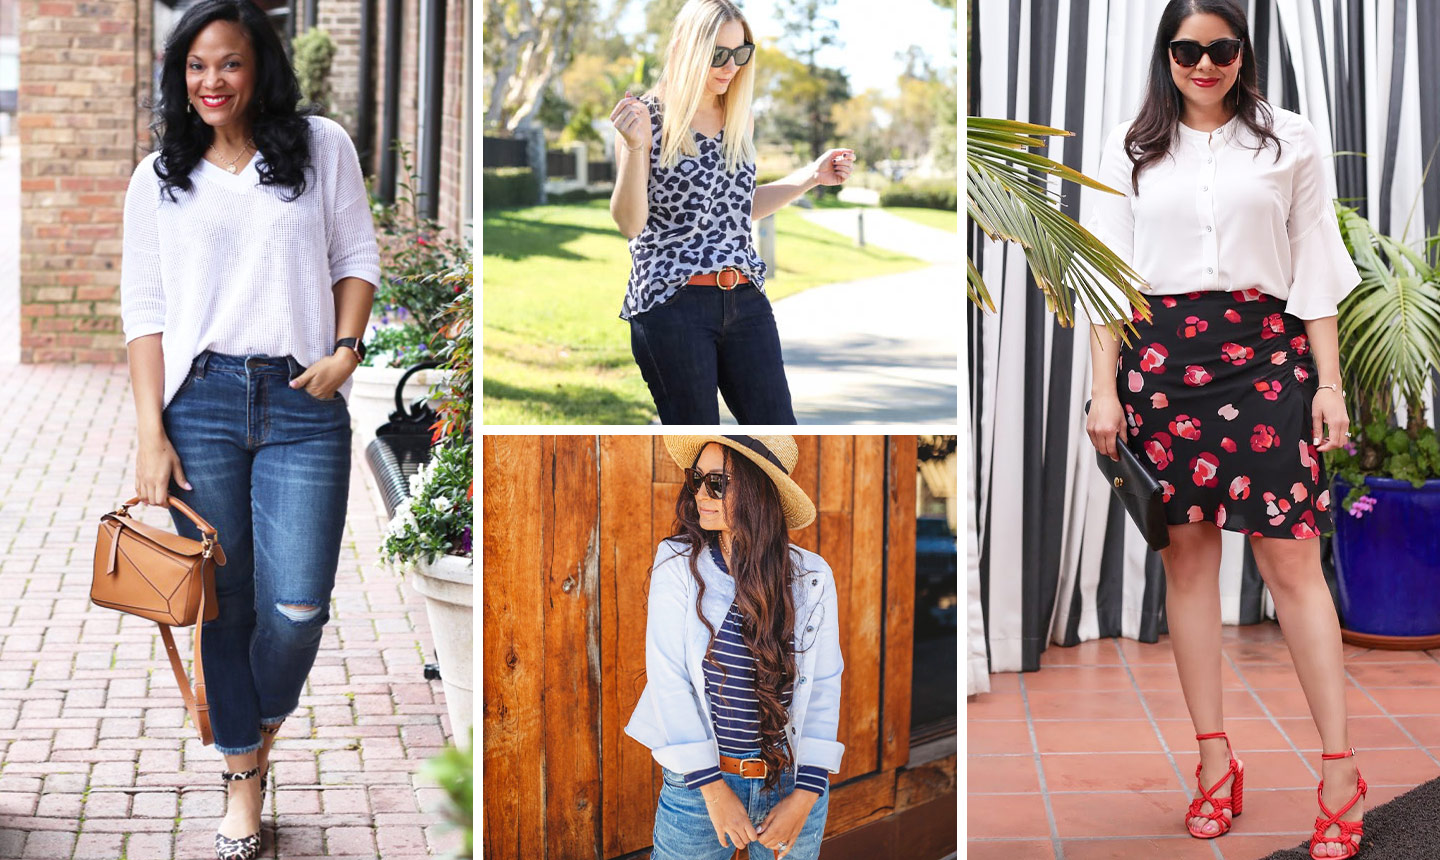 dcd3e2d062754 style blog posts that we simply love - Cabi Spring 2019 Collection